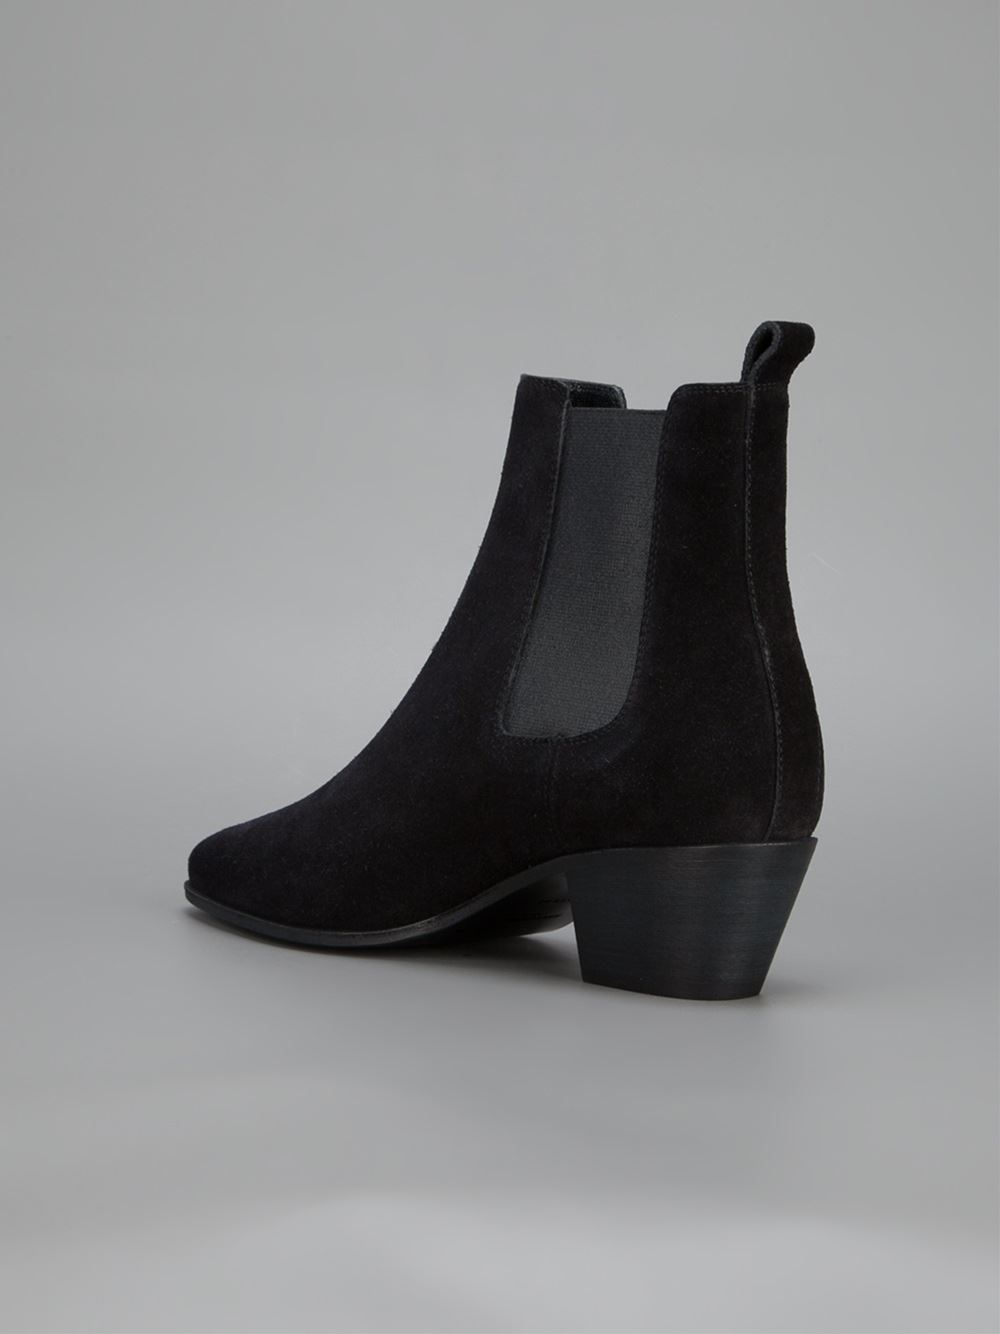 Saint laurent 'wyatt 40' ankle boots